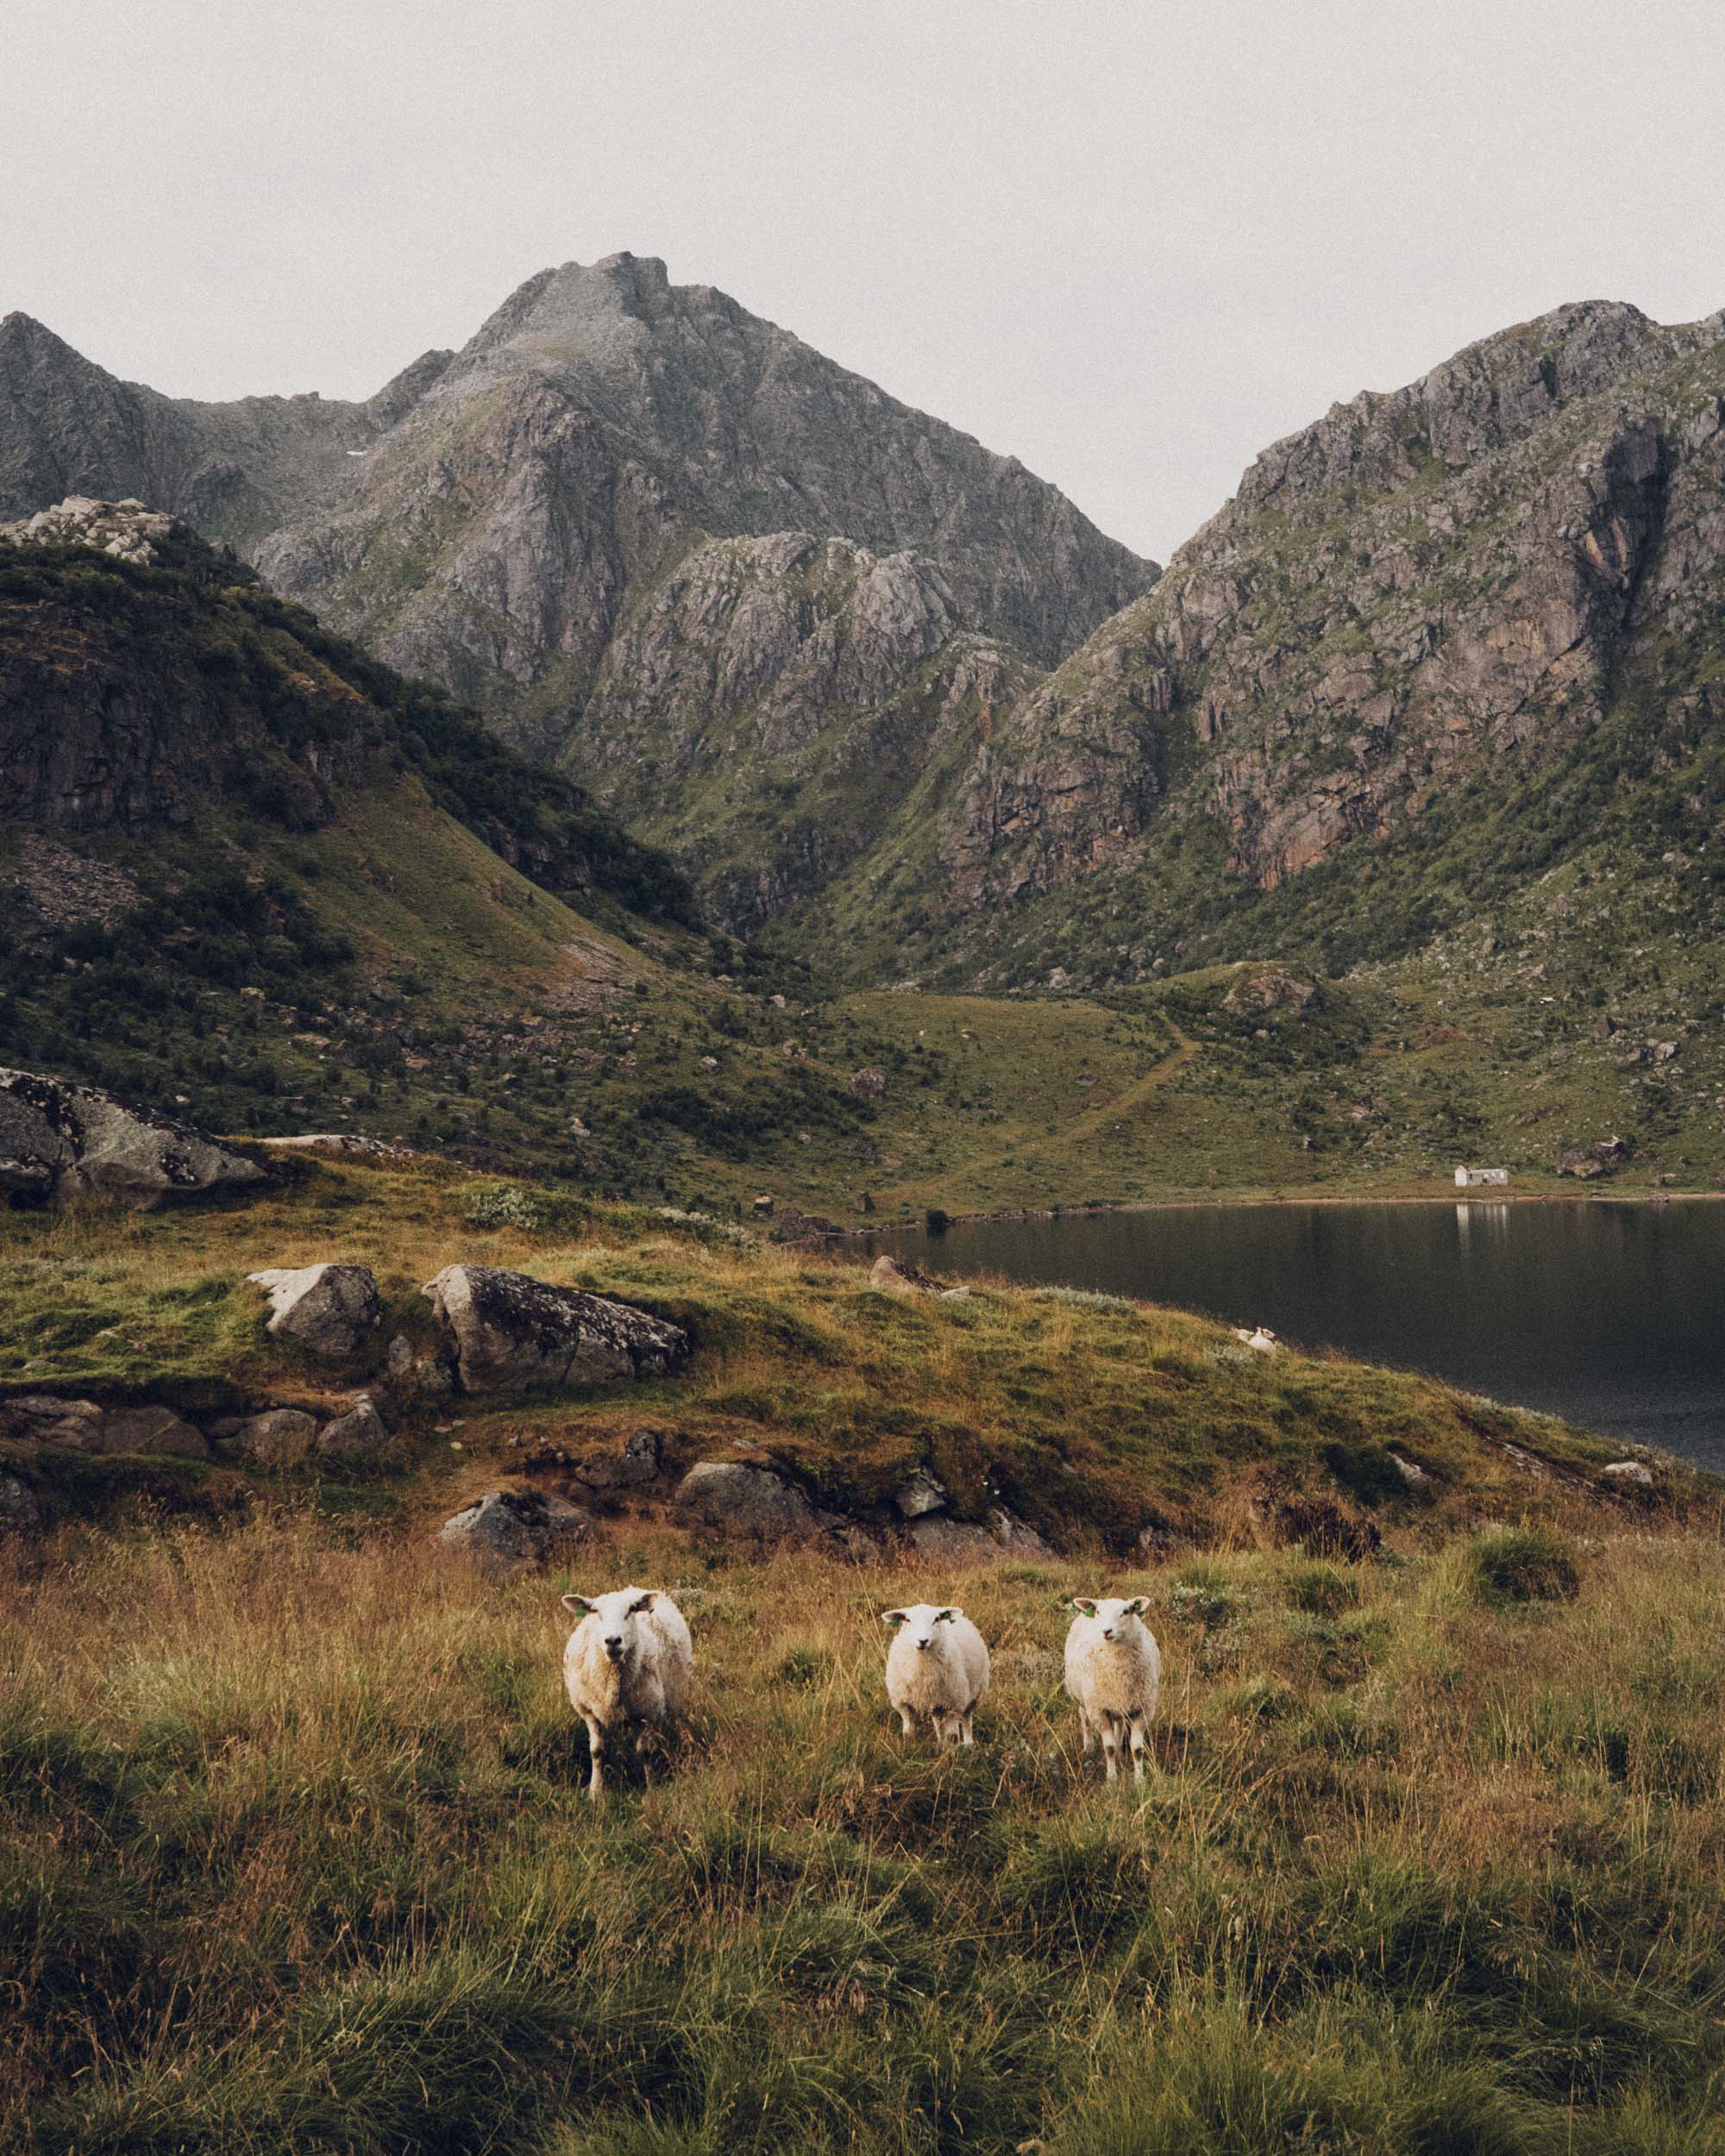 Sheep in the Lofoten Islands, Norway